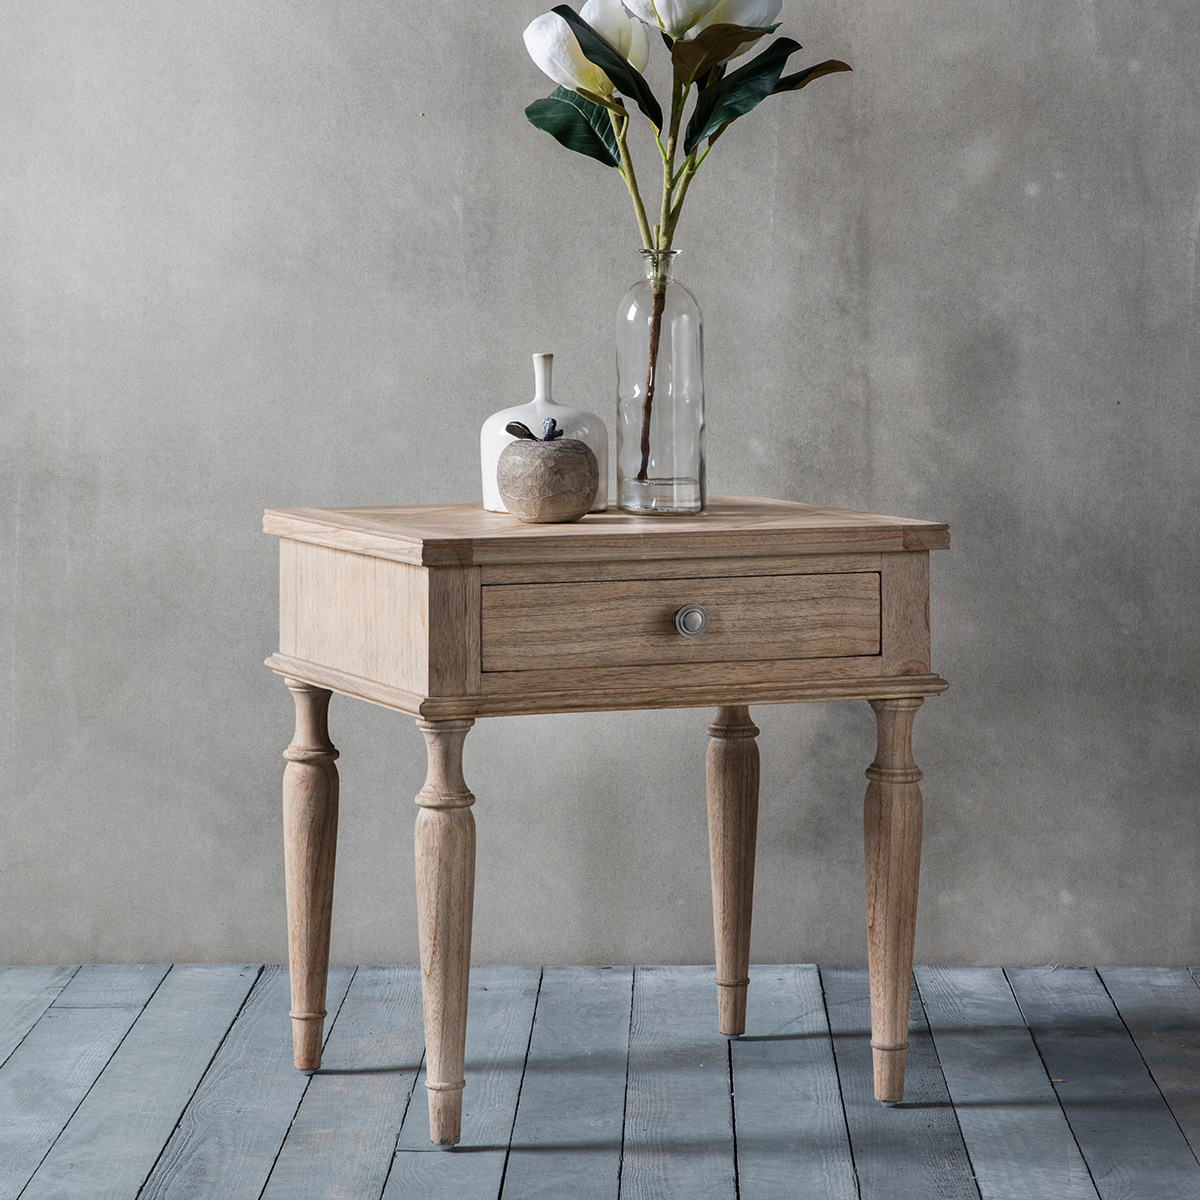 Delicieux French Colonial 1 Drawer Side Table At FADS.co.uk